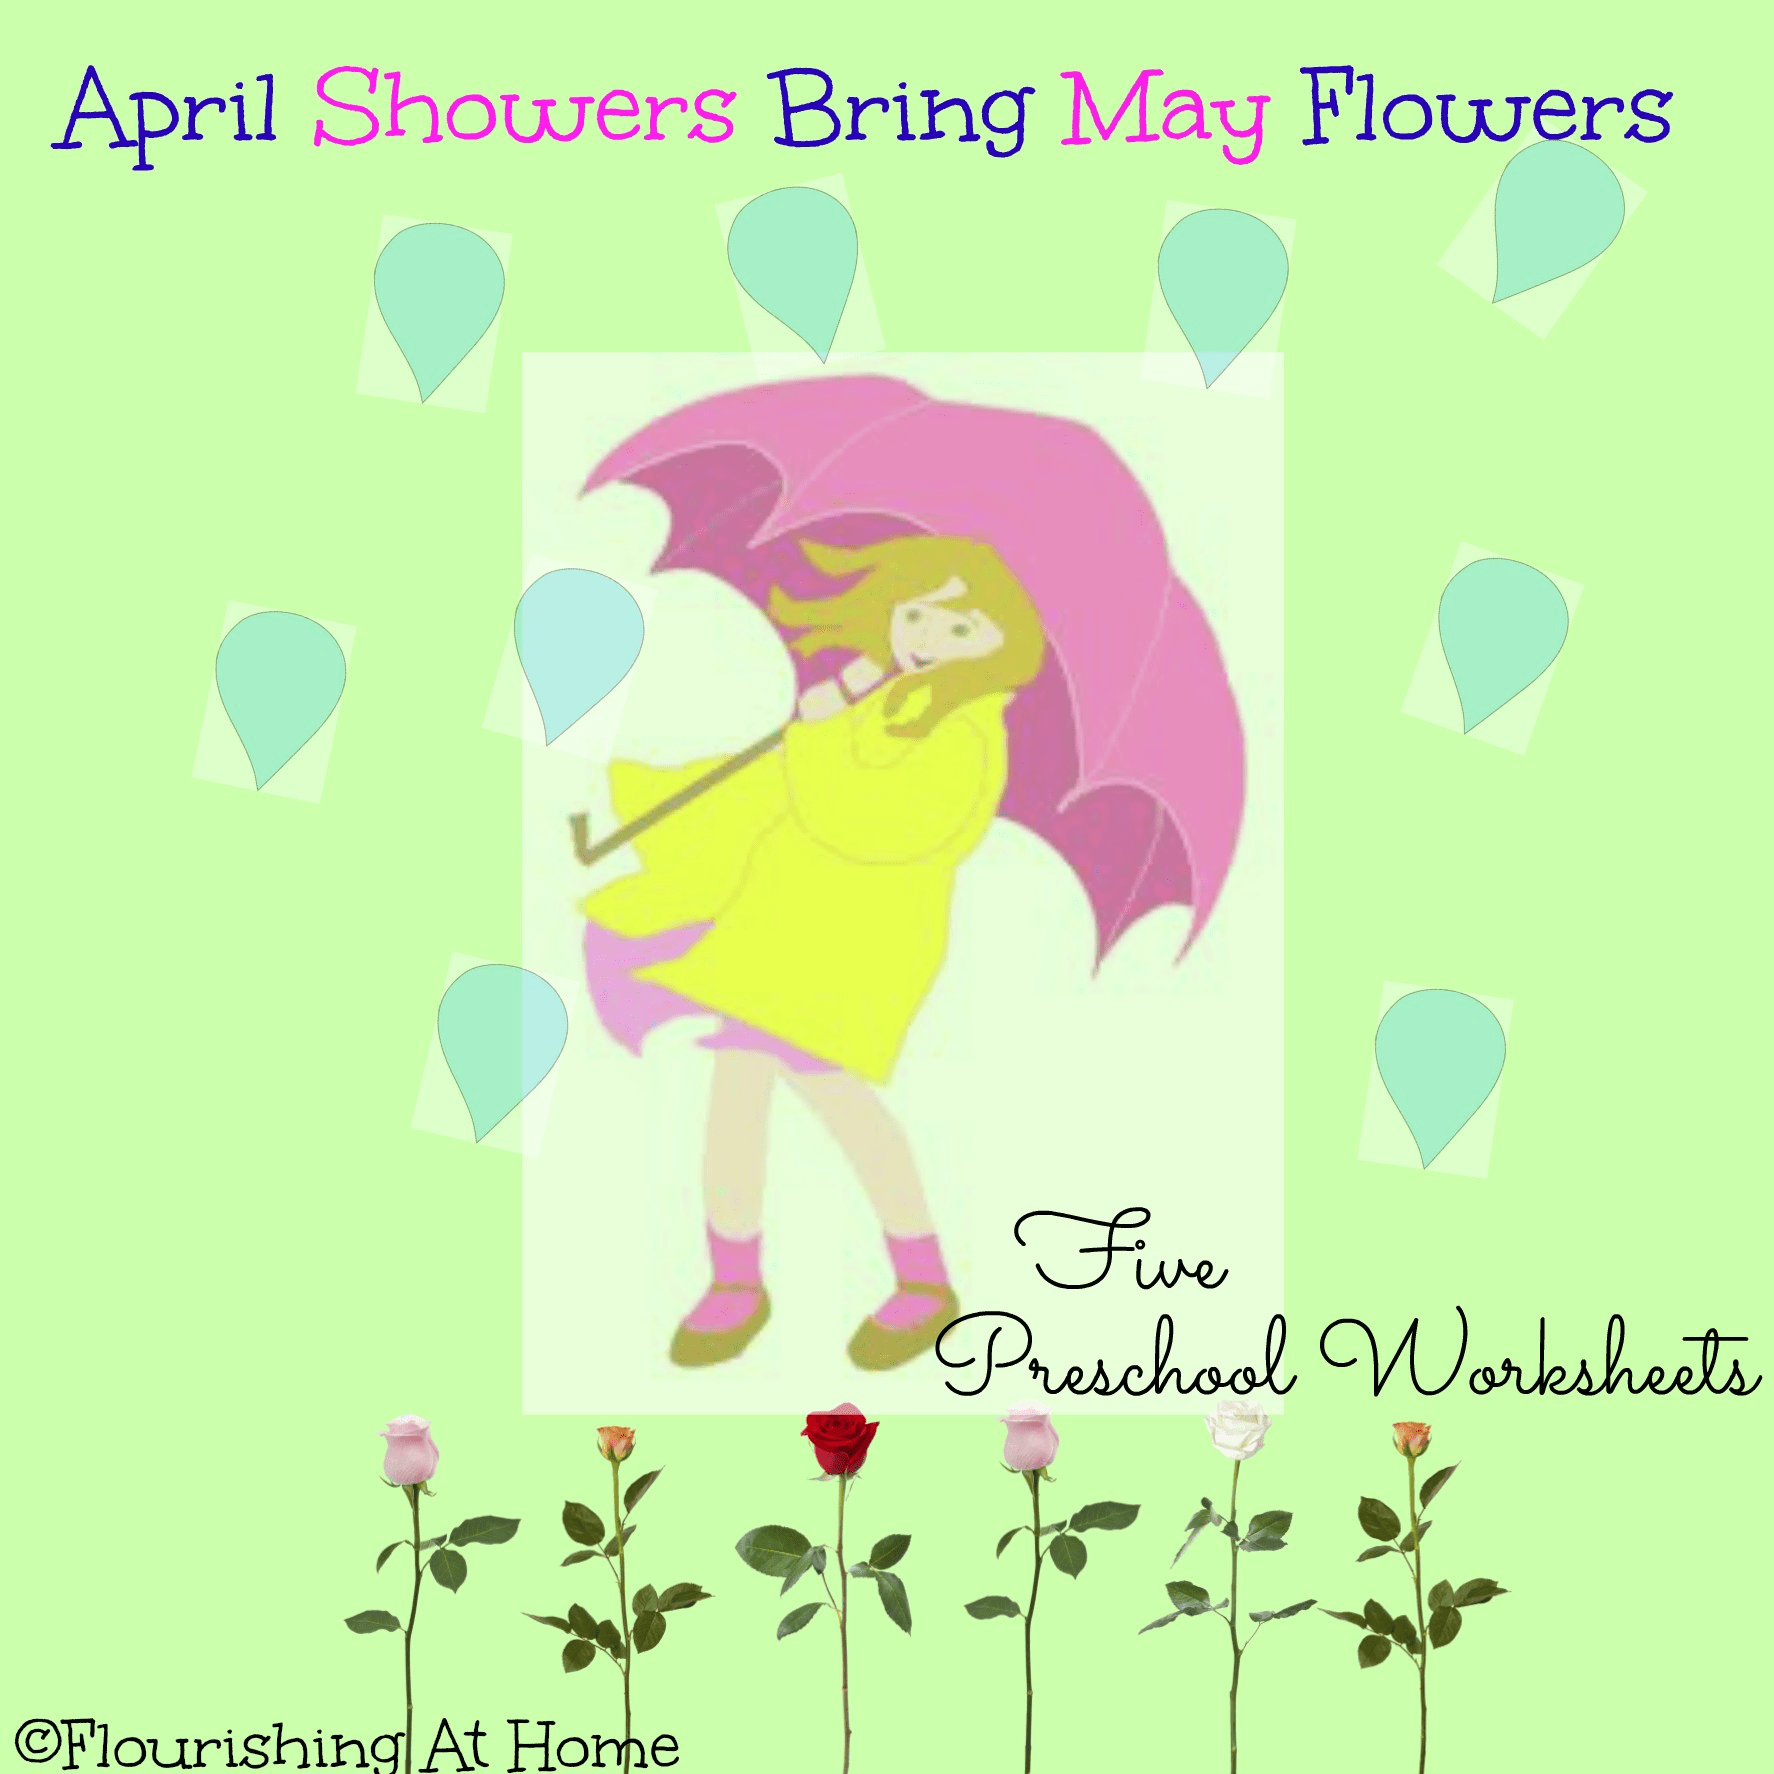 April Showers Bring May Flowers Preschool Worksheets At